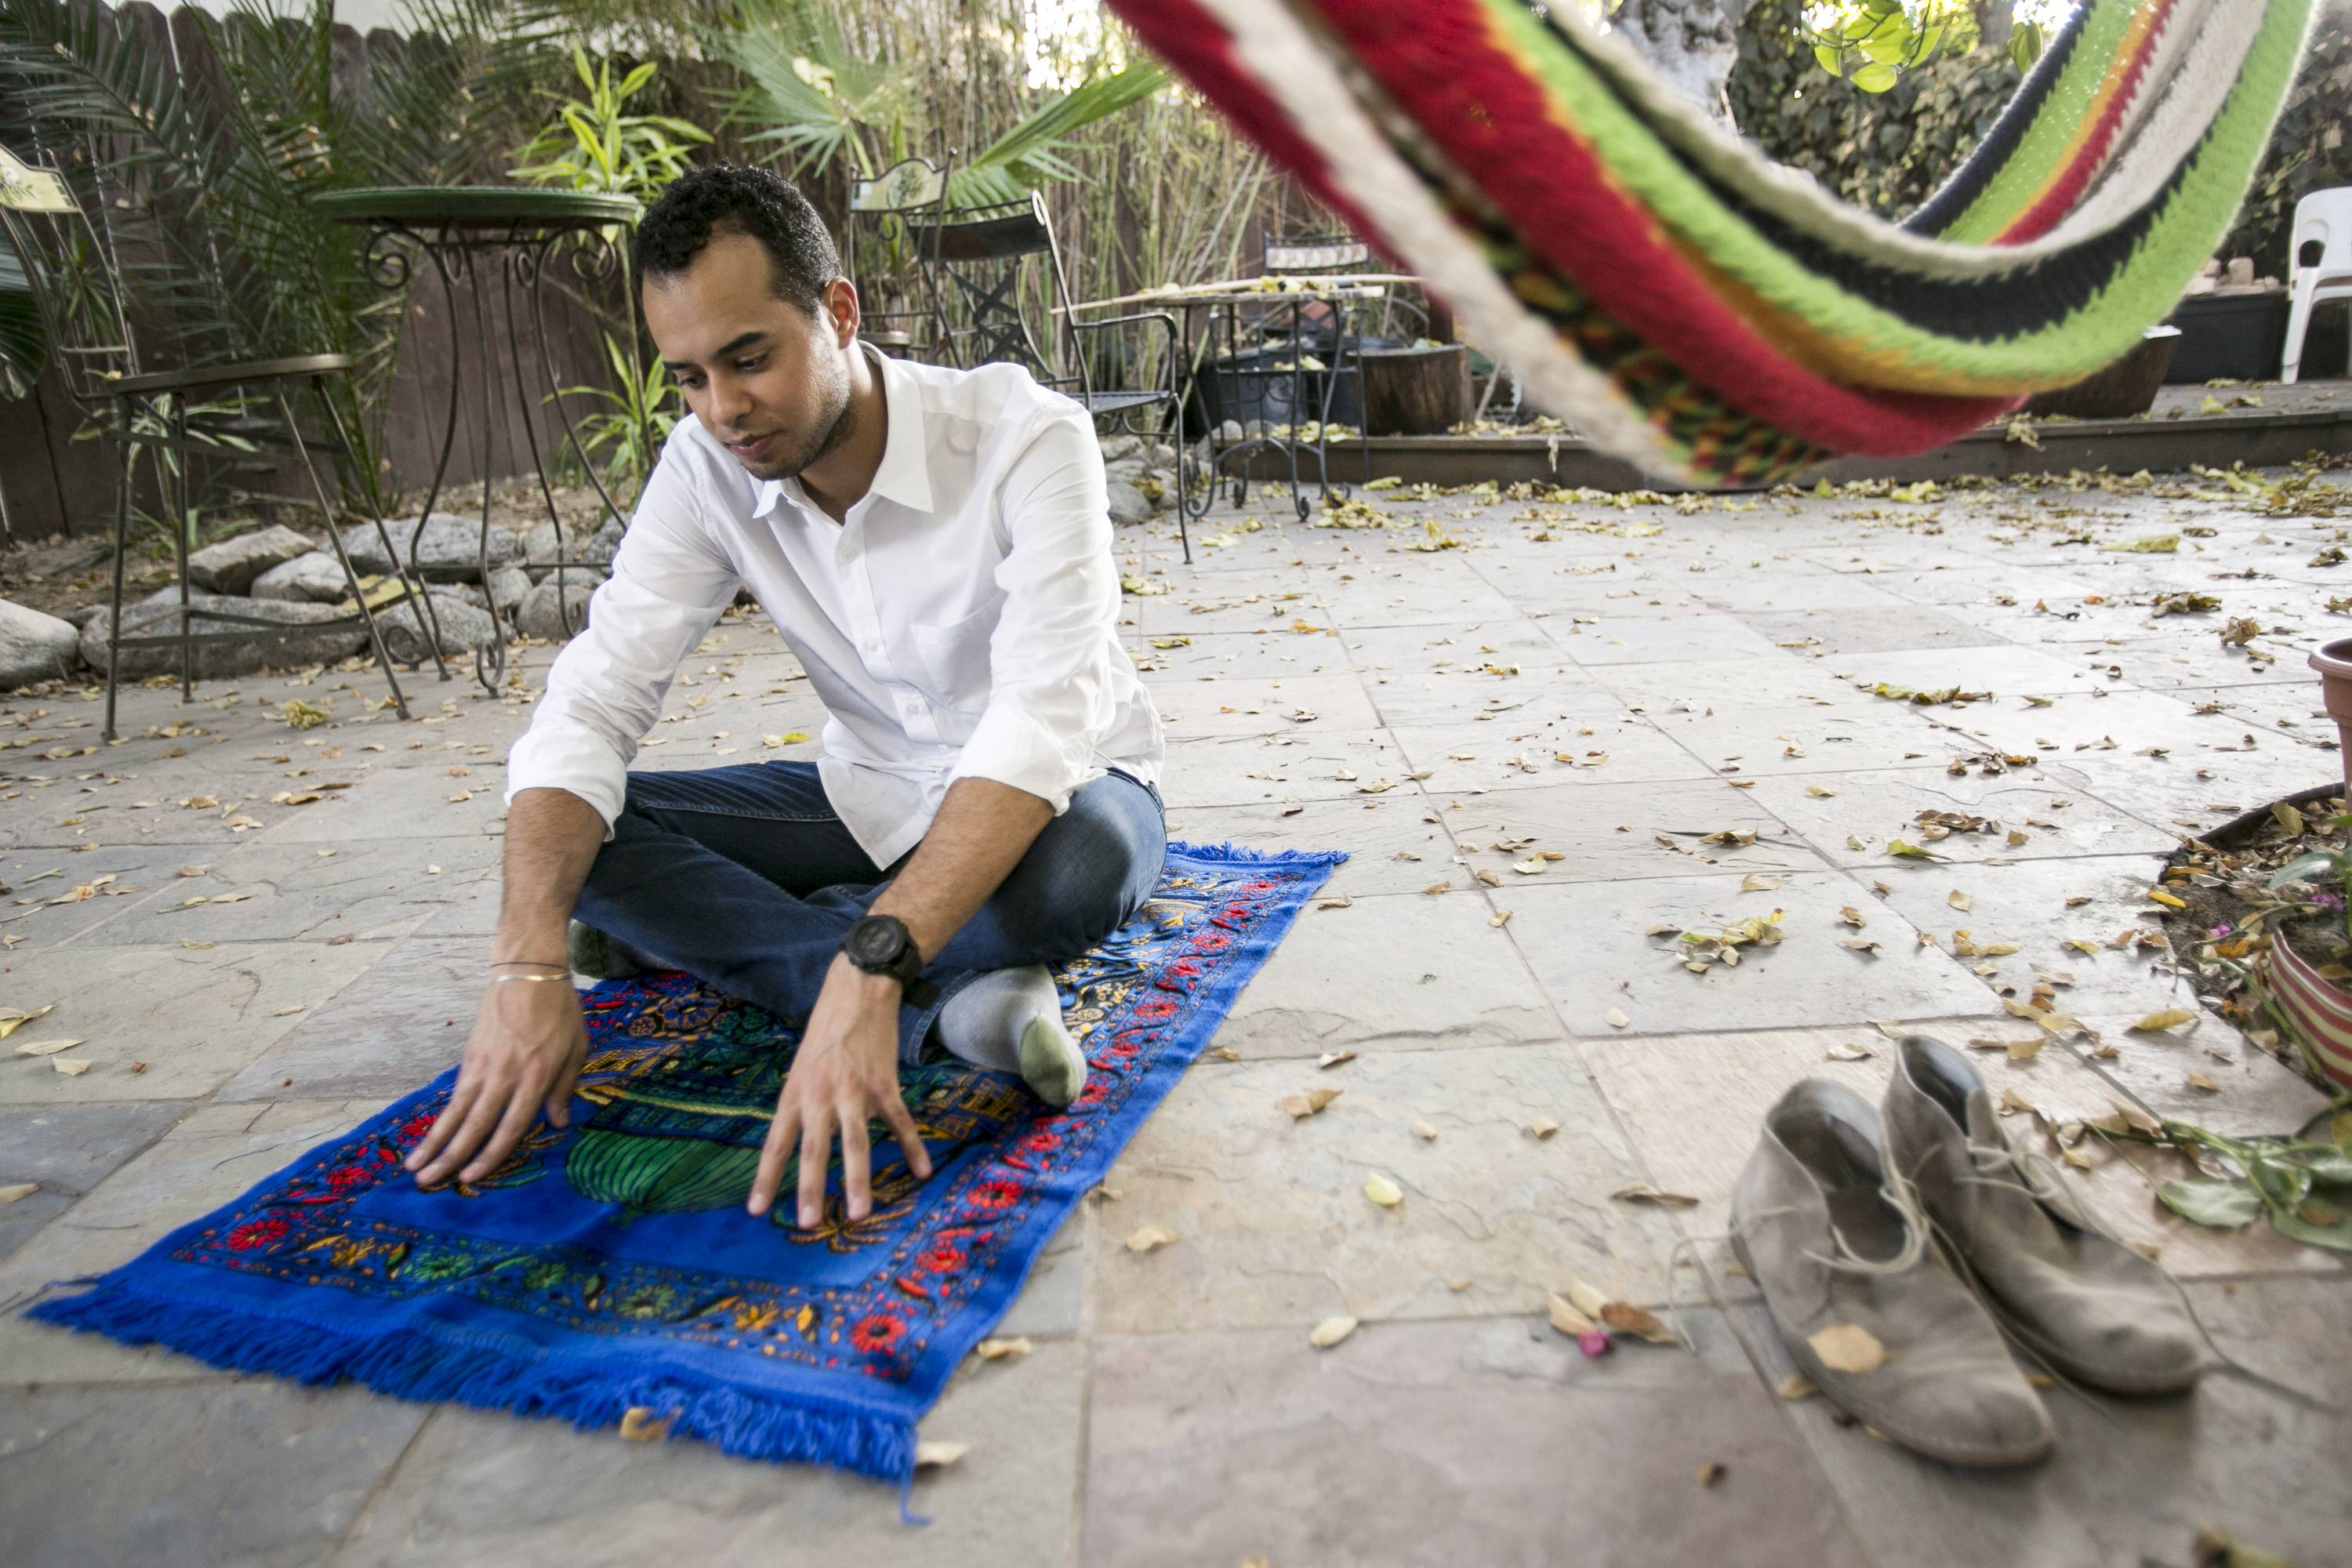 American Muslim Omar Akersim, 26, poses for a photo on his prayer rug at his home in Los Angeles Friday, Aug. 1, 2014. Nearly 40 percent of the estimated 2.75 million Muslims in the U.S. are American-born and the number is growing, with the Muslim population skewing younger than the U.S. population at large, according to a 2011 survey by the Pew Research Center.